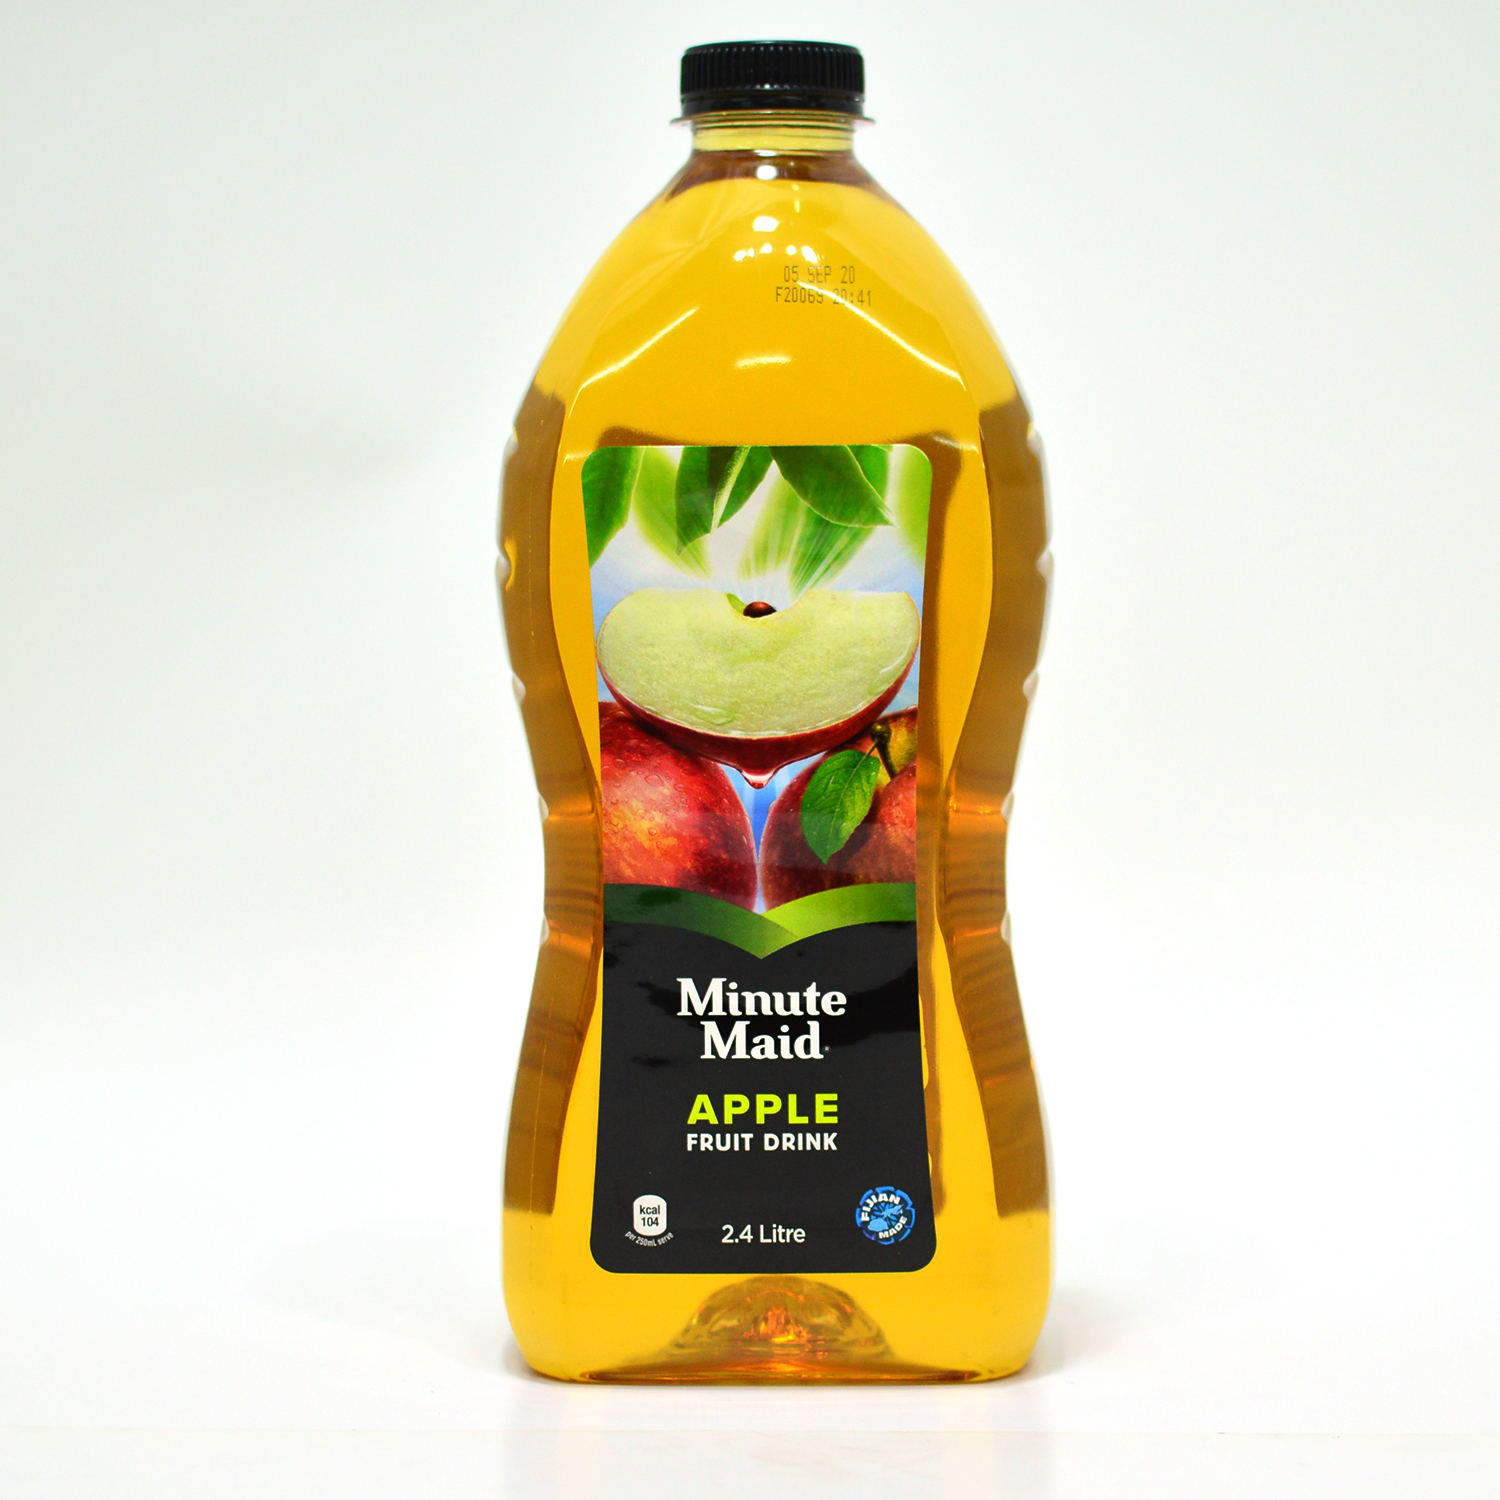 Minute Maid Apple Fruit Drink 2.4ltr